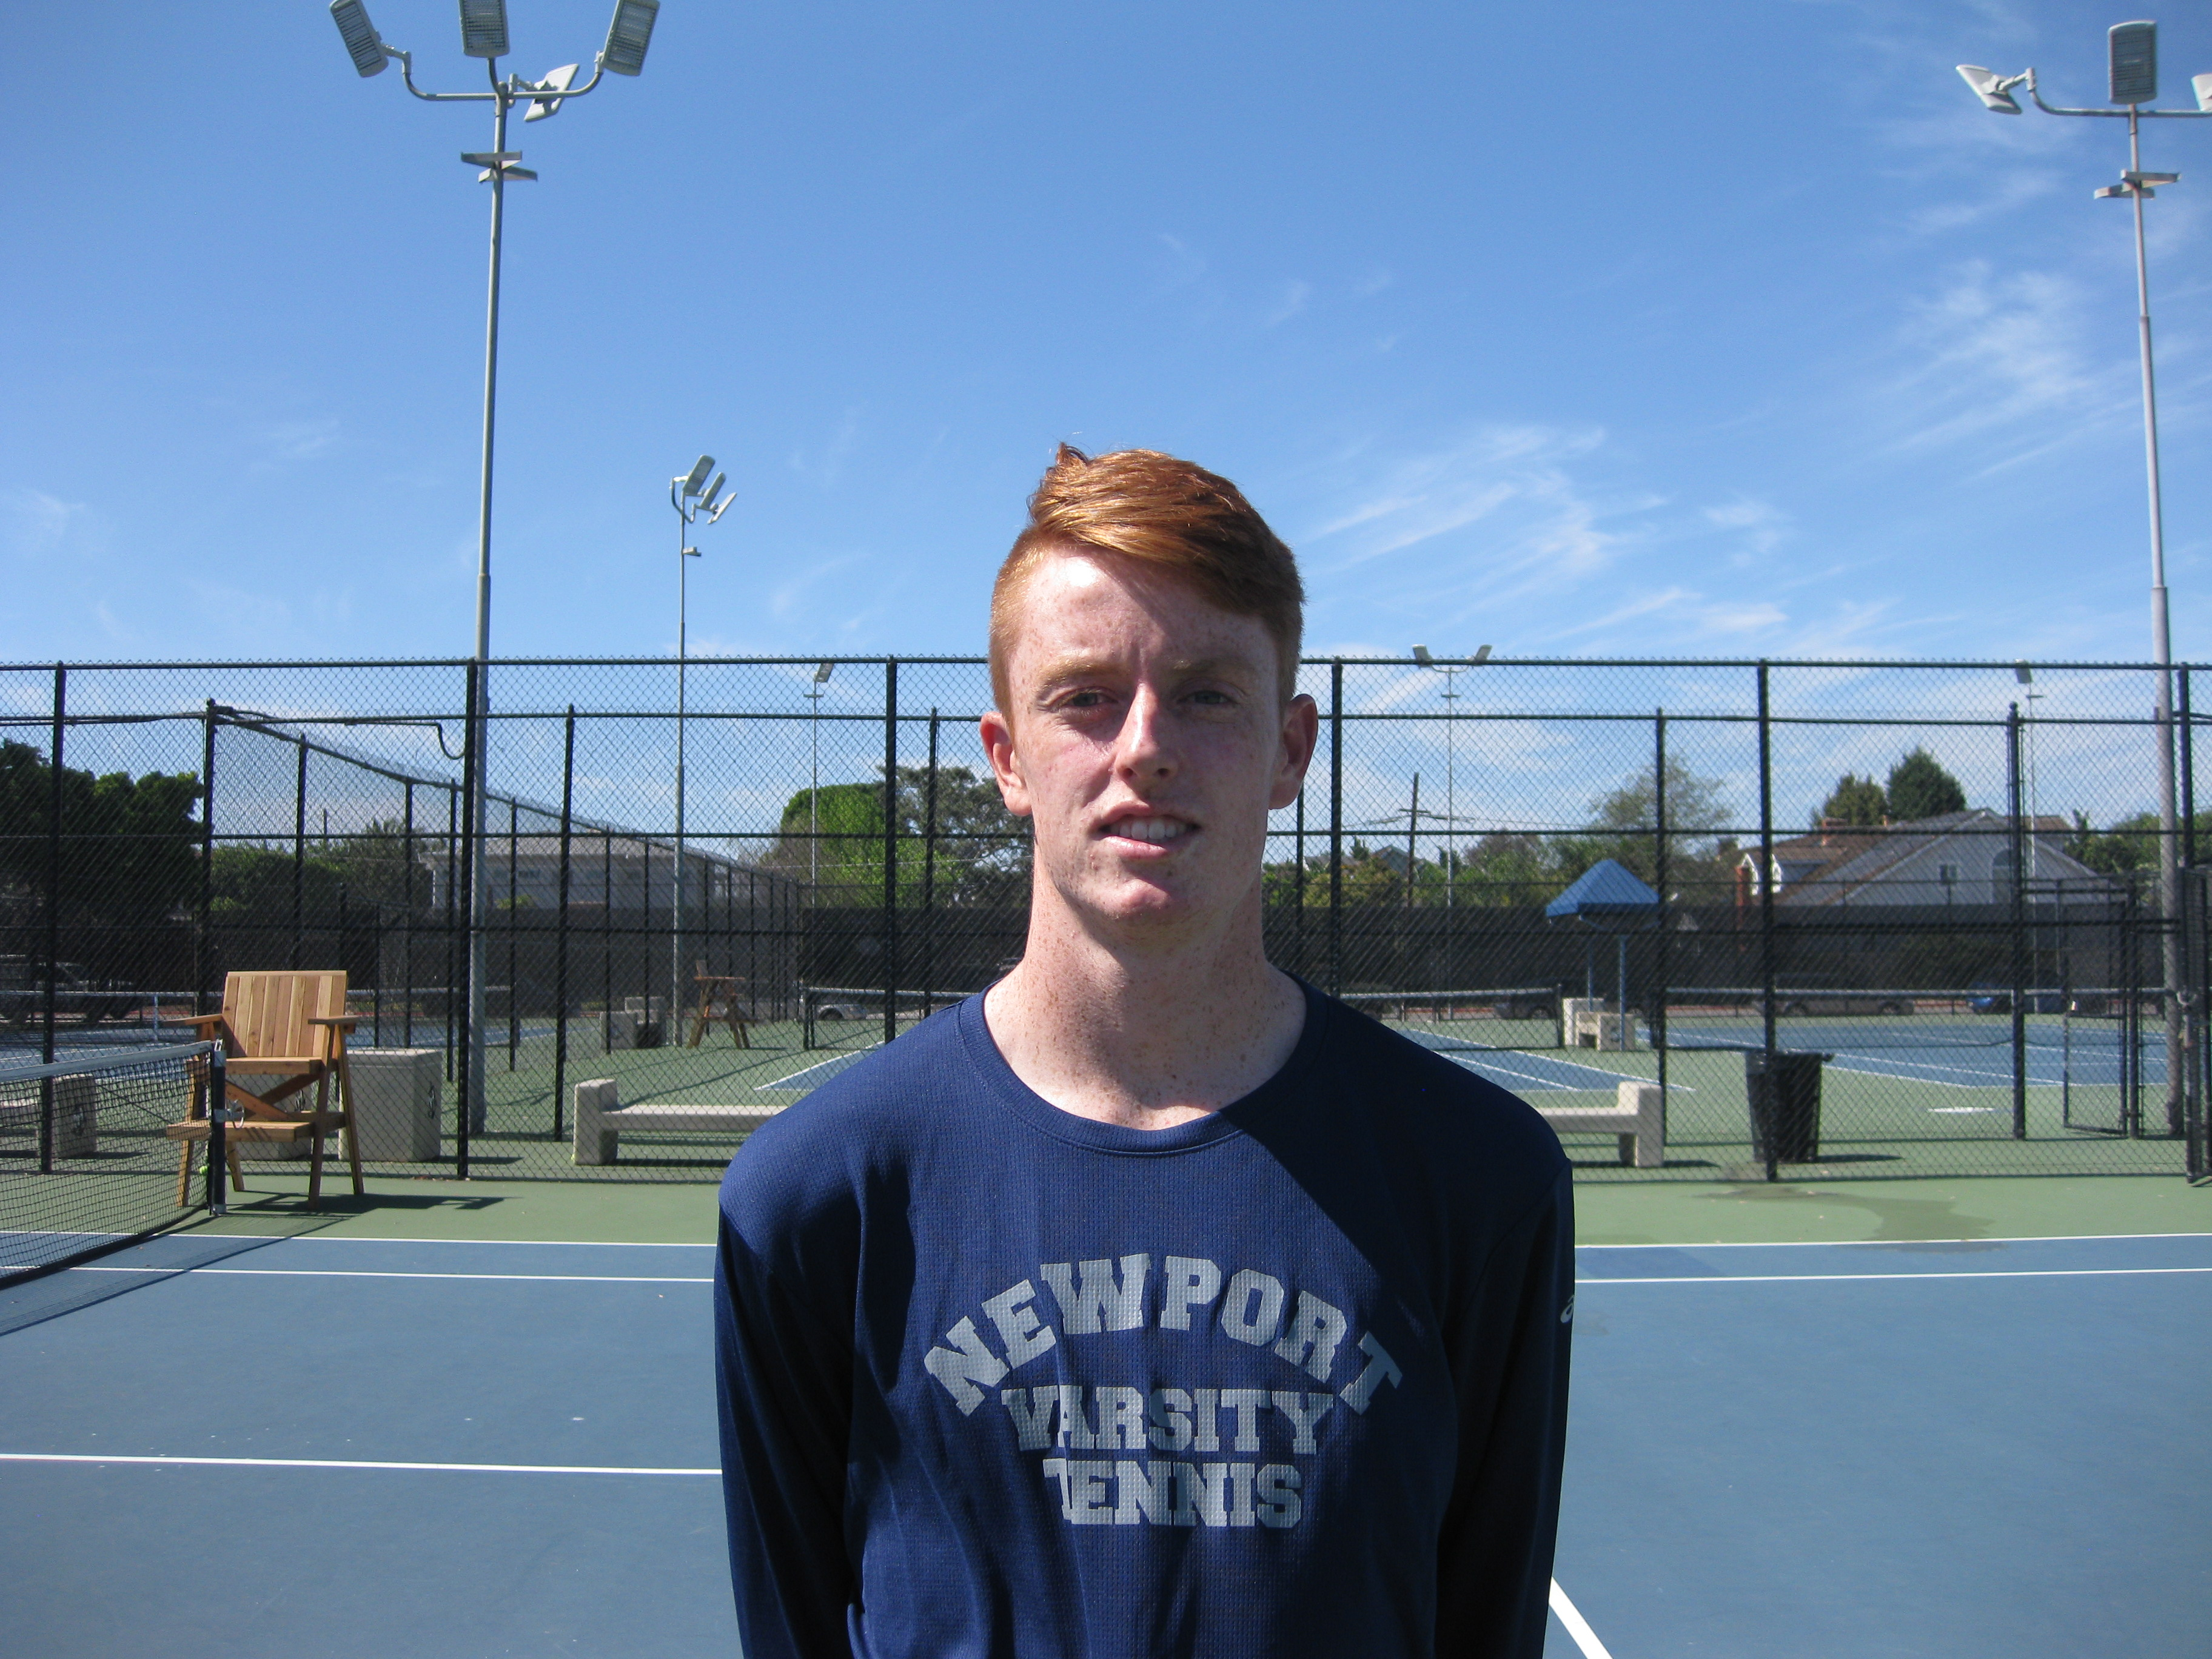 Sailors #1 singles player and TCU-Bound Reese Stalder remains undefeated in  singles play